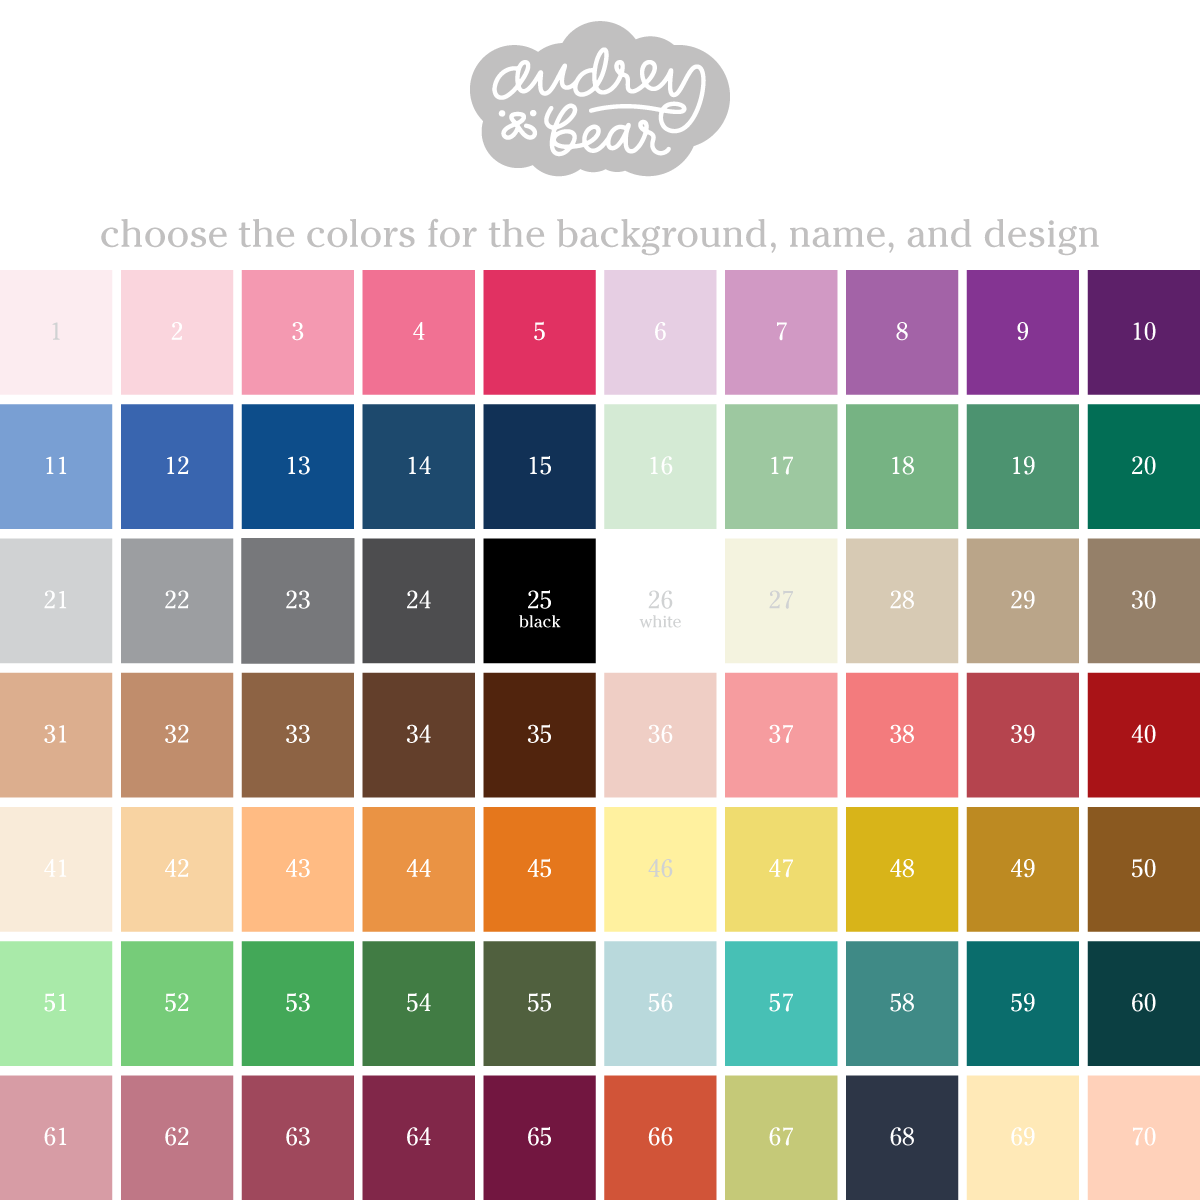 Audrey & Bear Color Chart